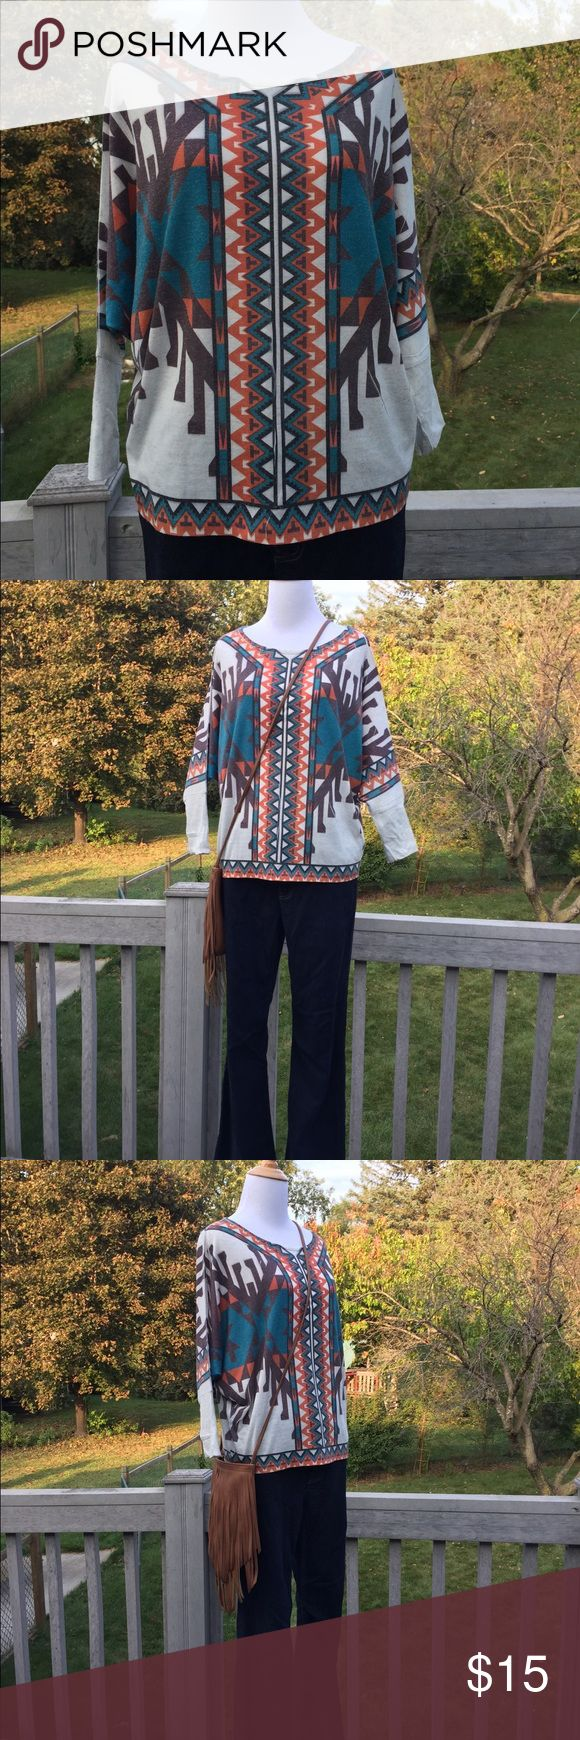 Tribal Shirt This gorgeous tribal-patterned top by Tea N Rose is a comfy blend of 85% polyester and 15% linen. The teal, orange, brown and white colors are perfect for fall! The batwing sleeves are 3/4 length. Tea N Rose Tops Tunics